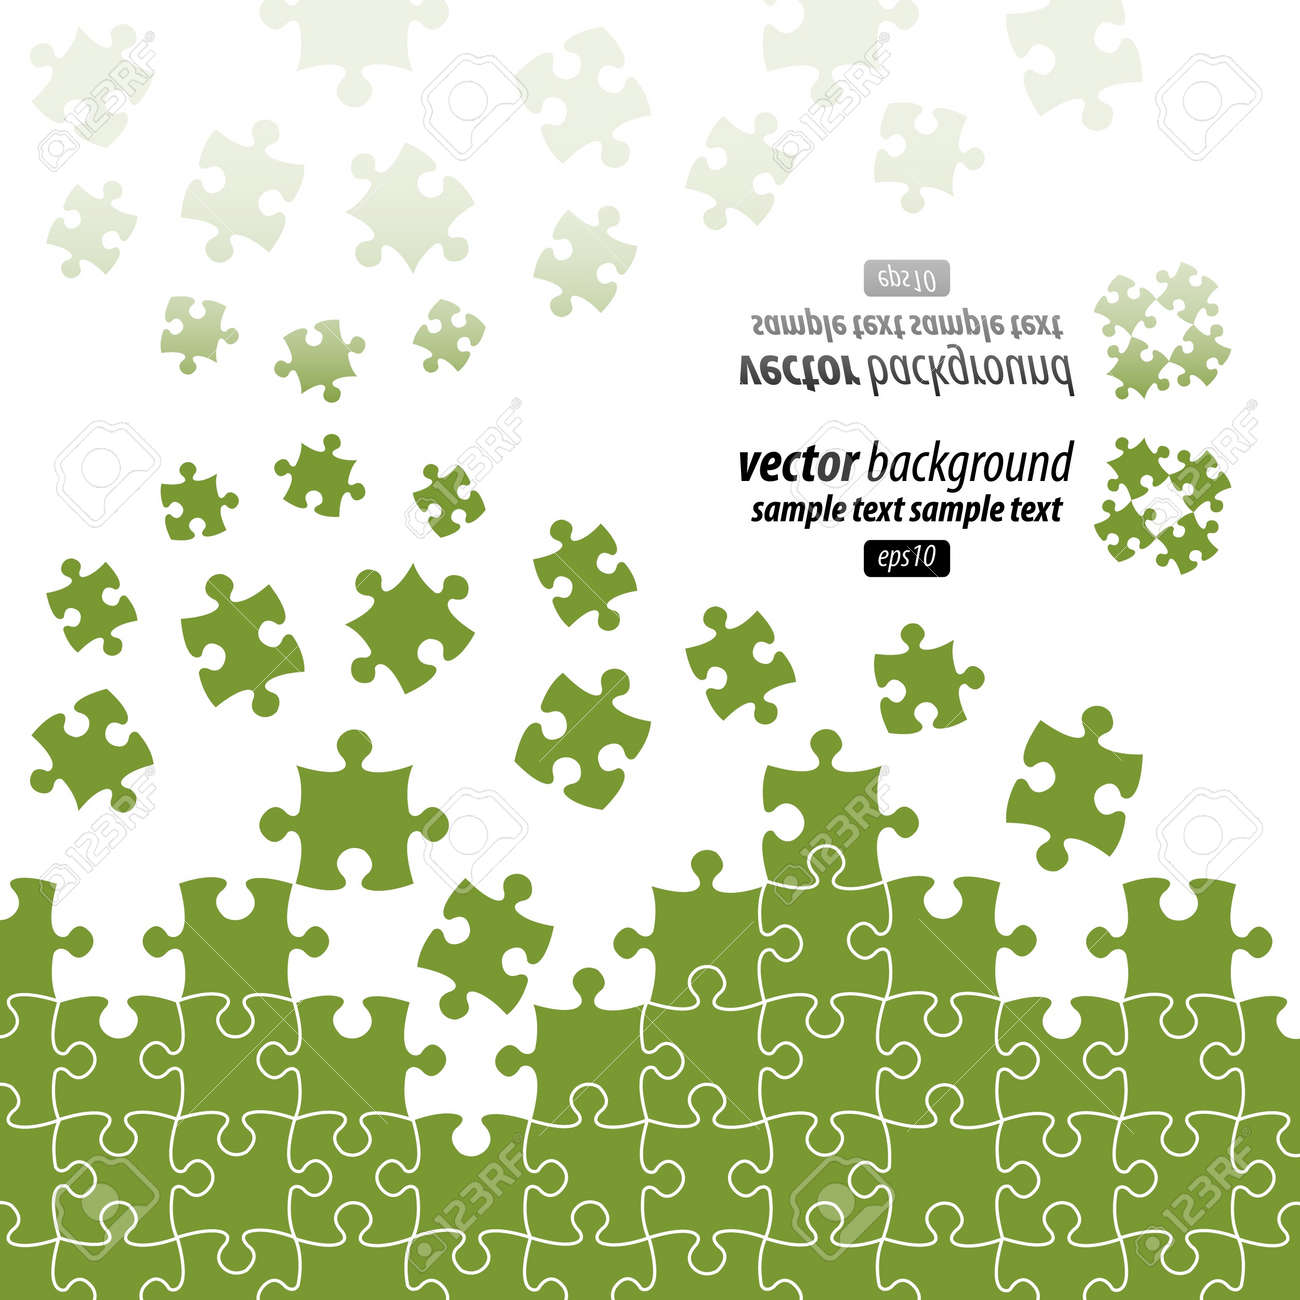 Puzzle pieces vector design reflected Stock Vector - 9865970